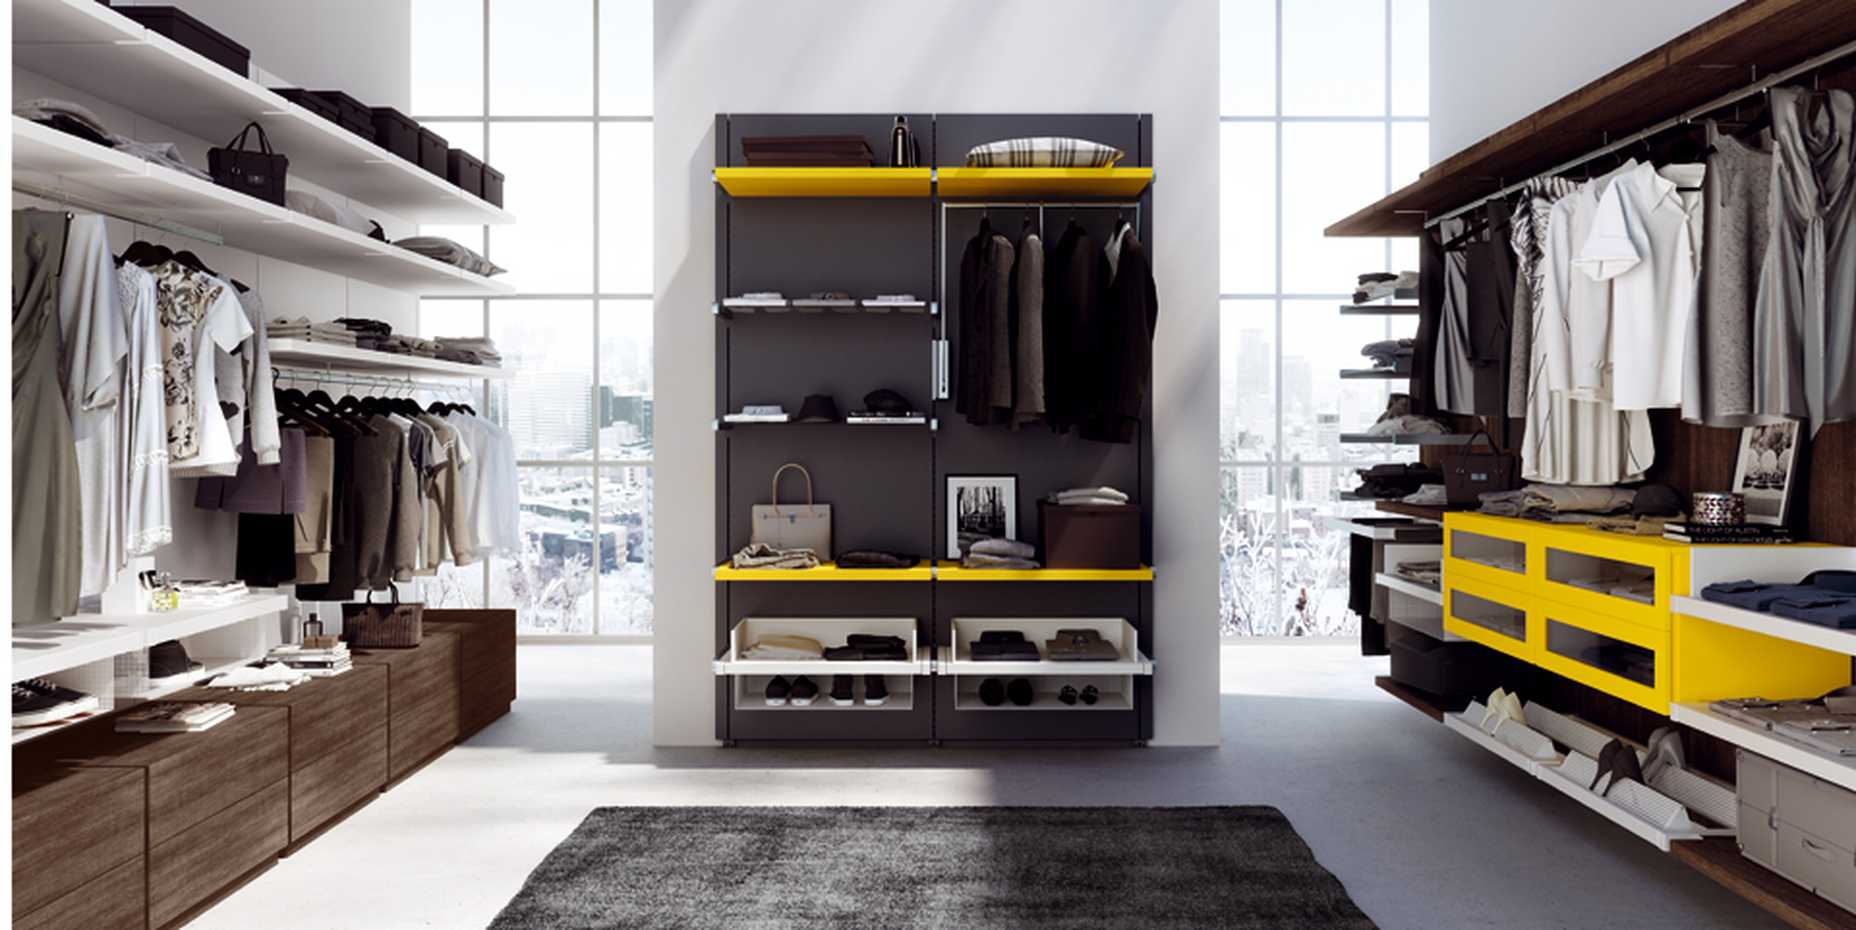 Rack Walk-in Wardrobe by Mercantini product image 2